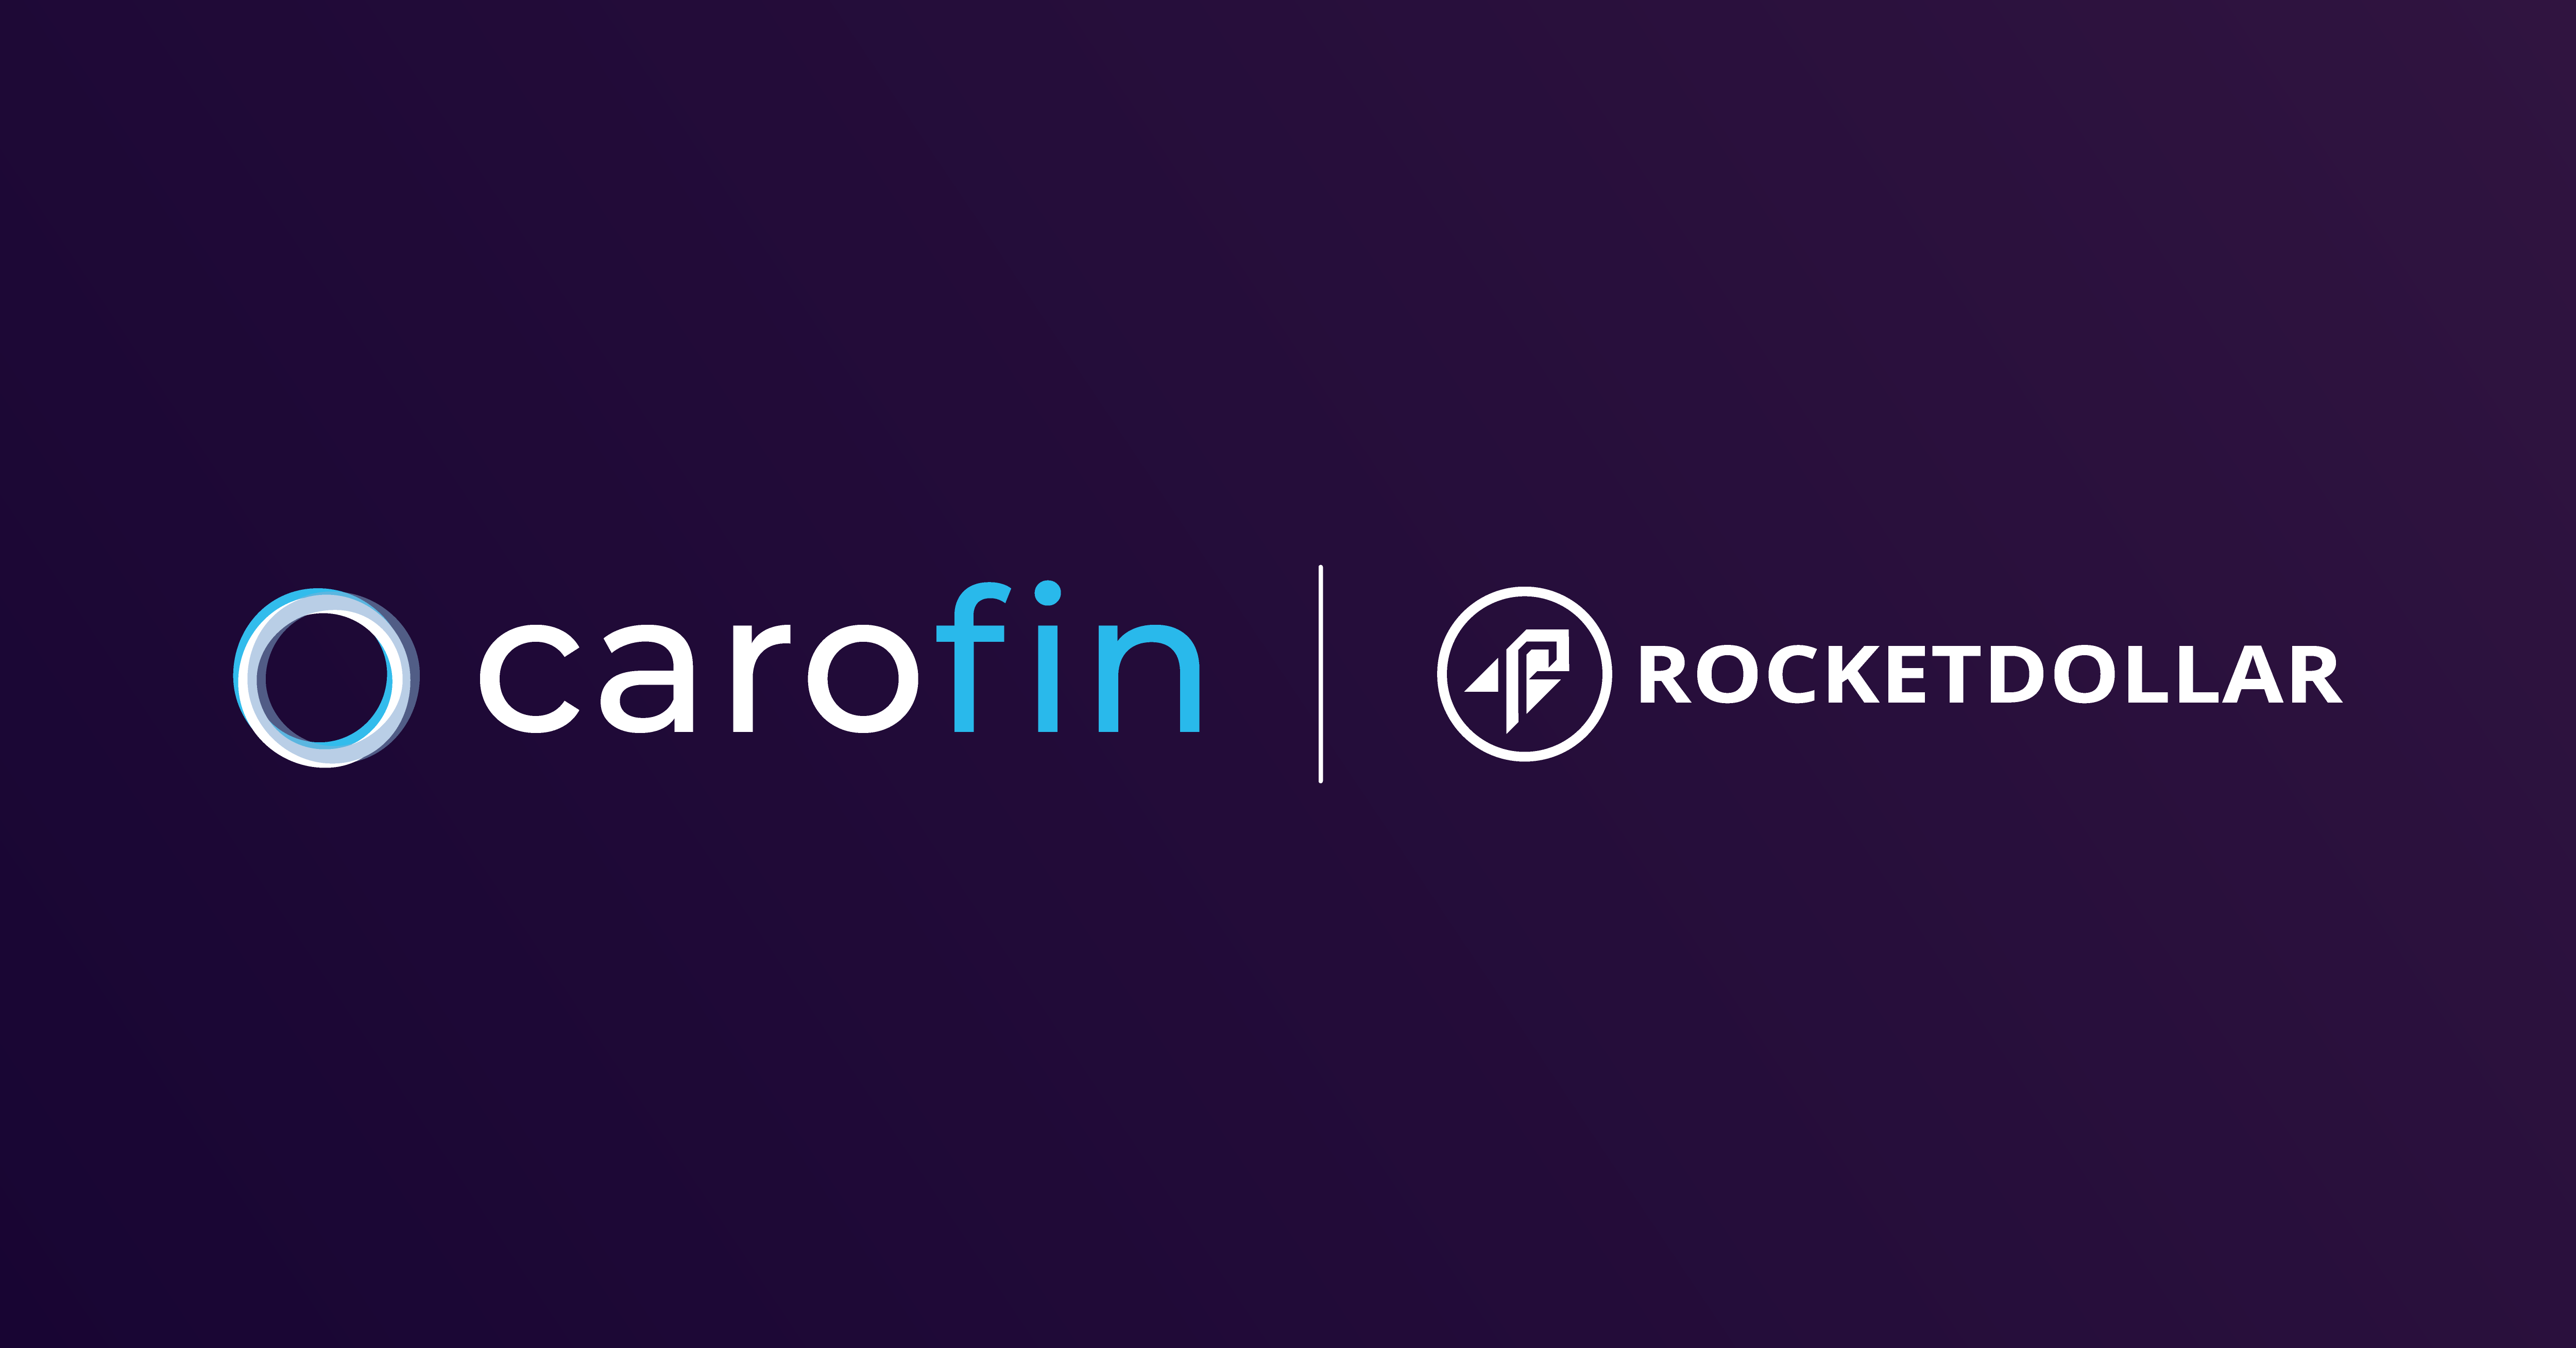 Carofin & Rocket Dollar Discuss Responding to Changing Markets